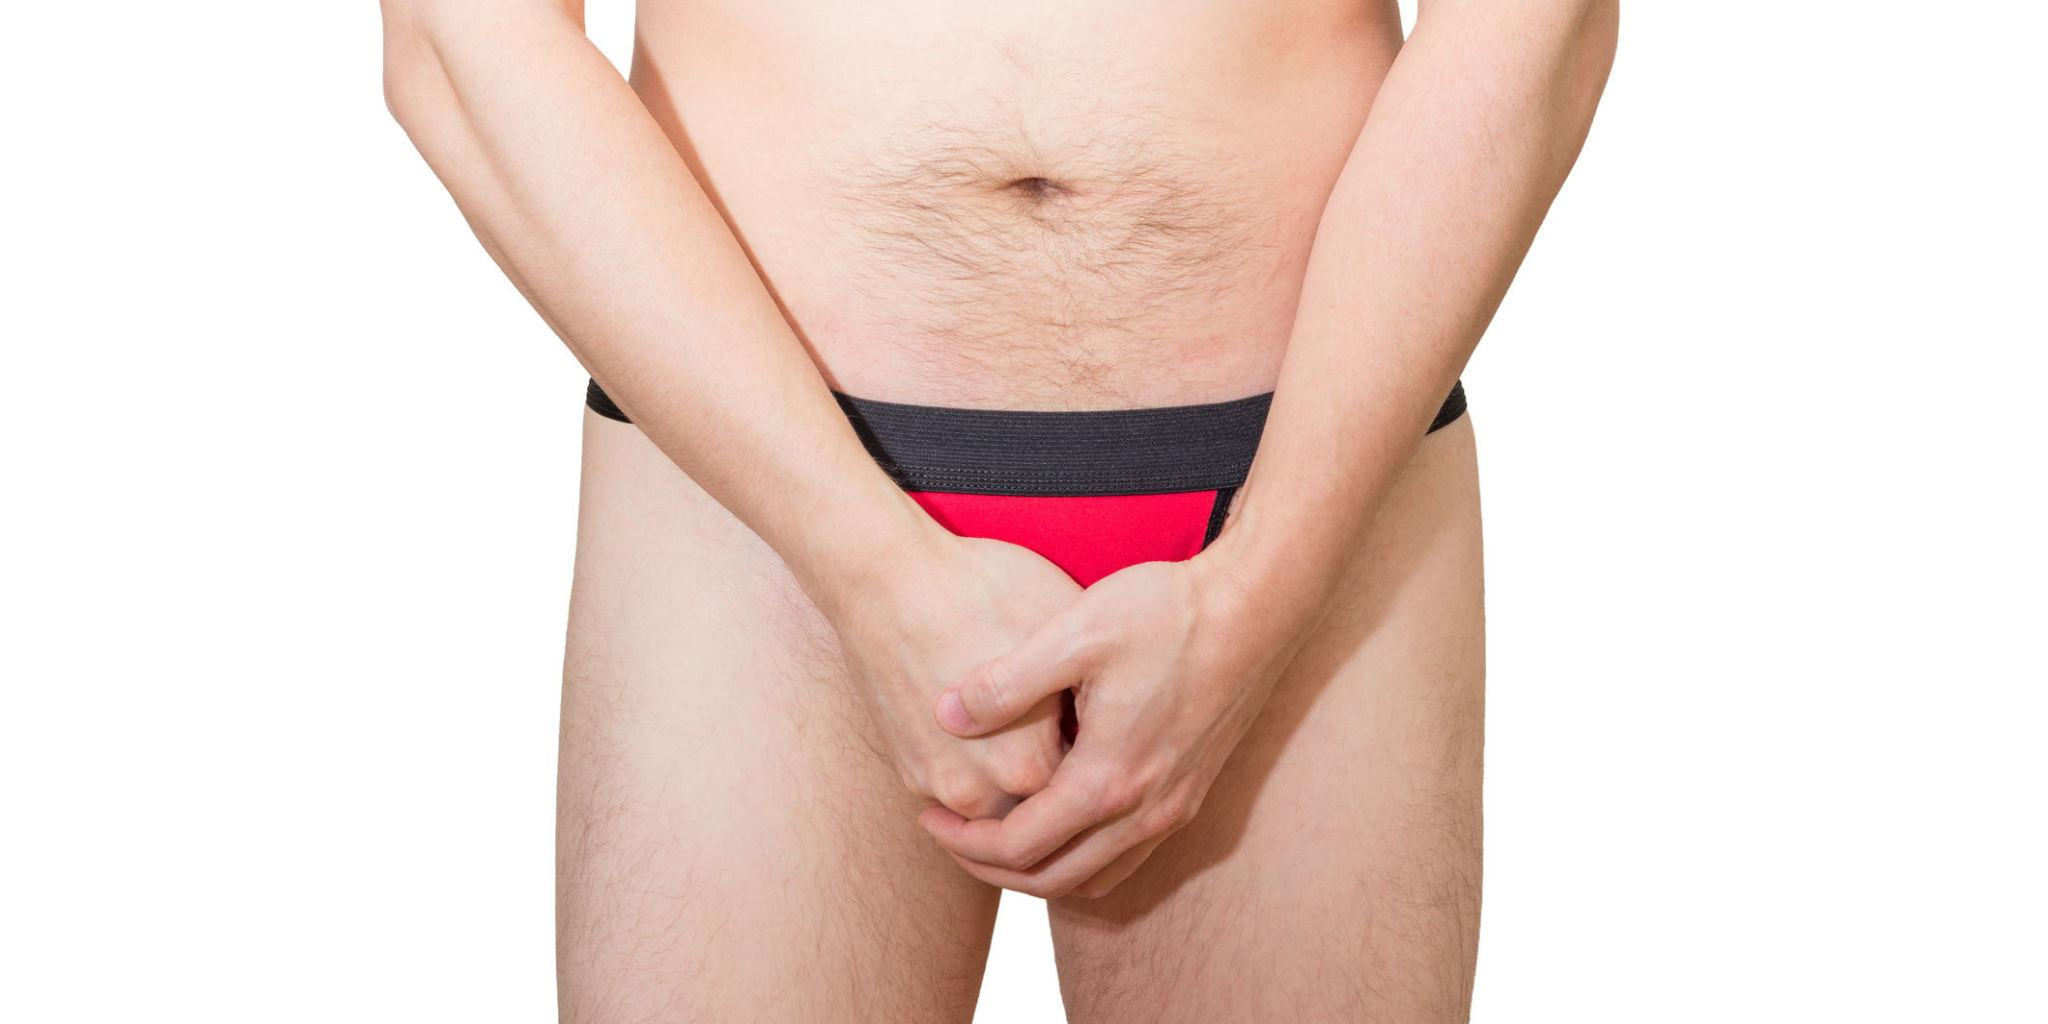 11 Twentysomething Men Explain Why They Shave Their Pubic Hair